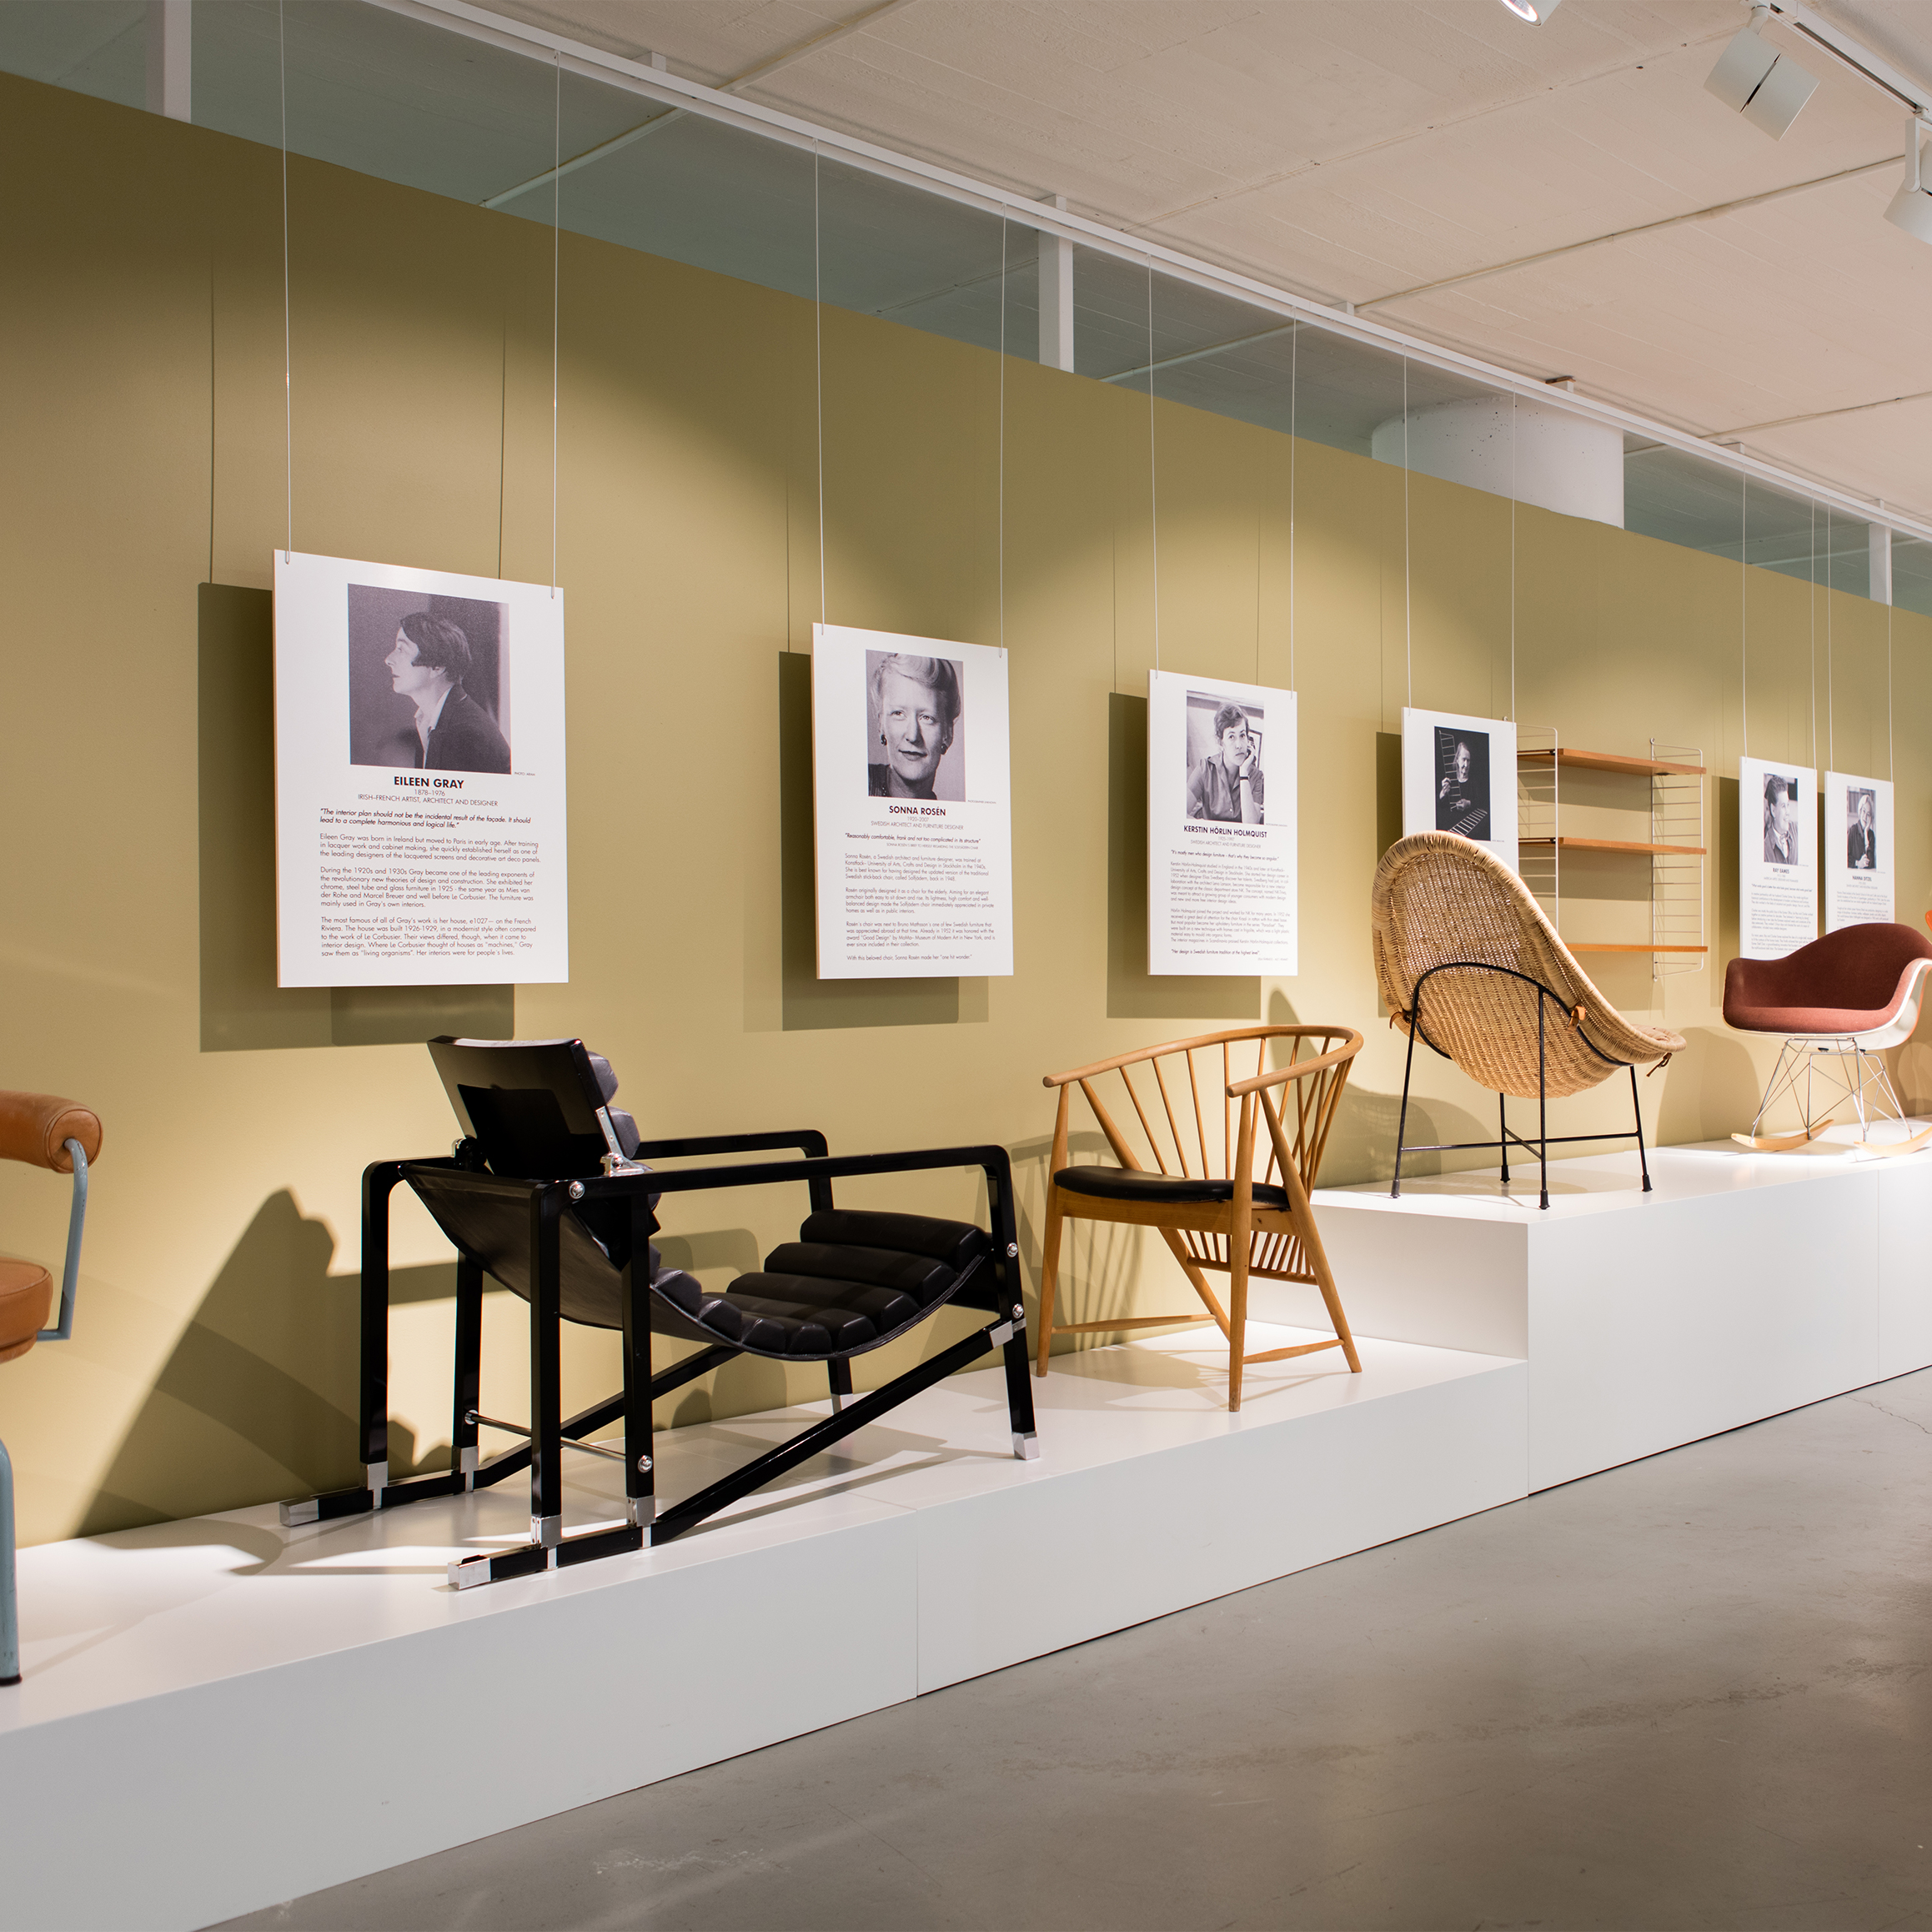 Design Furnitures News Updates About The Museum Of Furniture Studies Möbeldesignmuseum